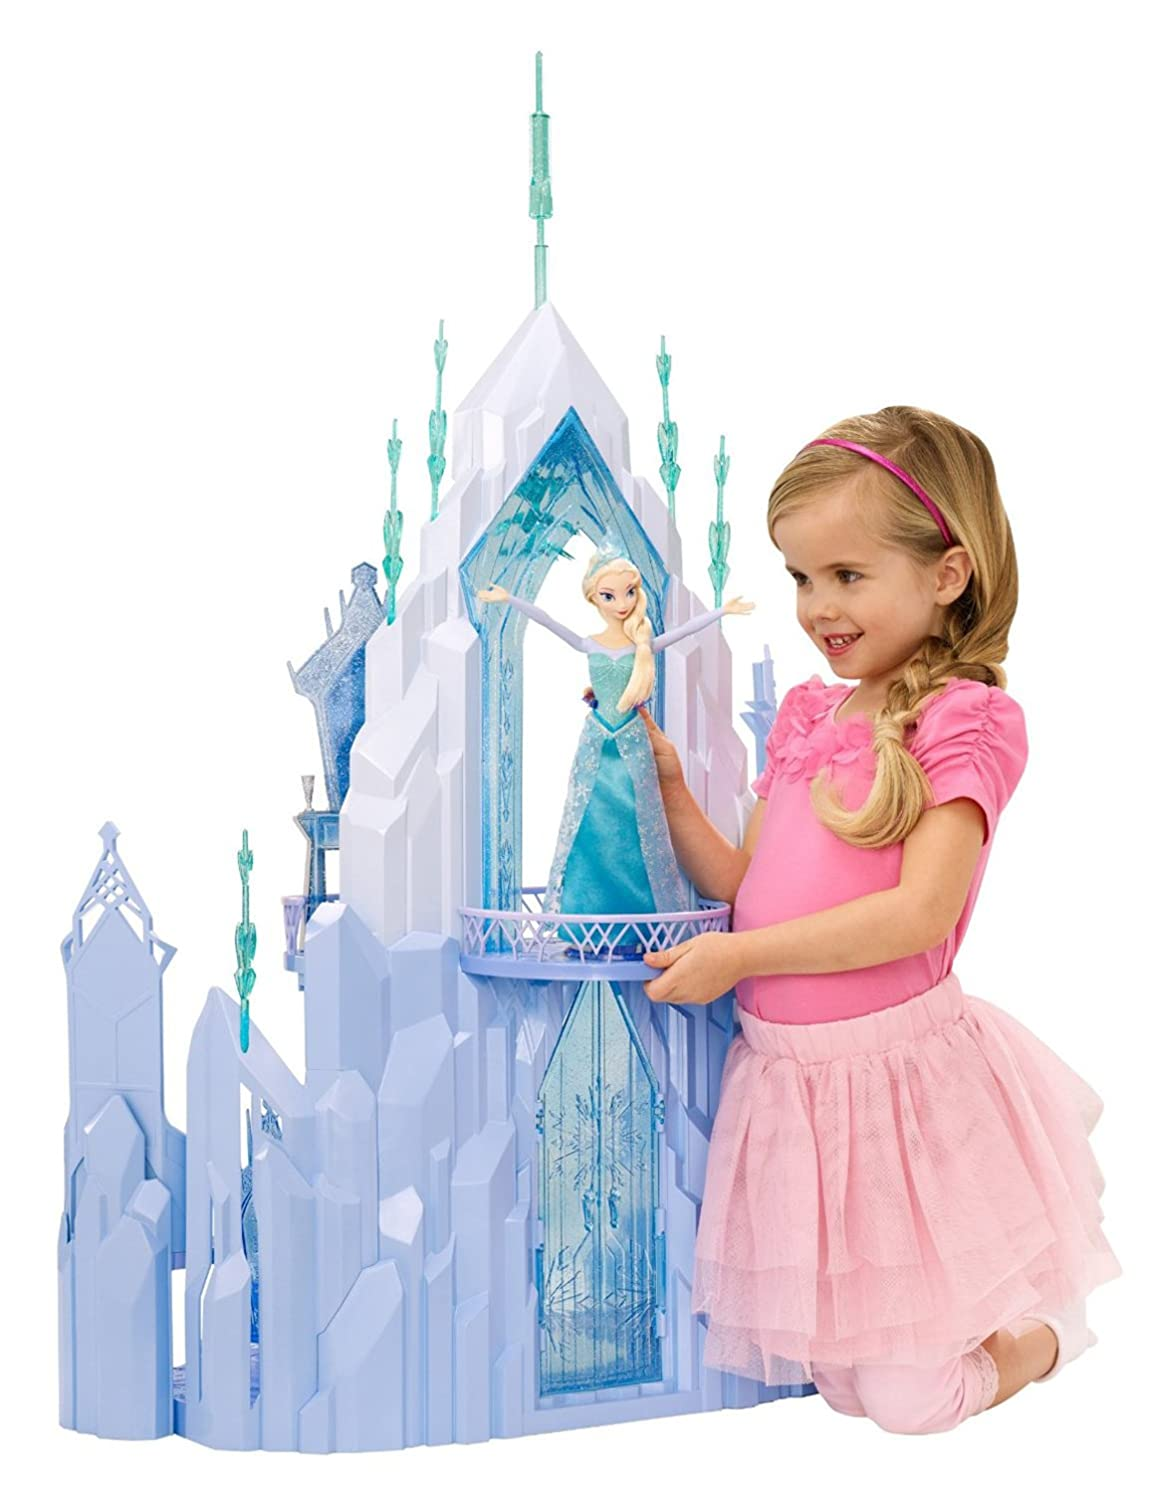 Elsas Ice Castle Playset Gift for Girls who Love Disneys Frozen border=